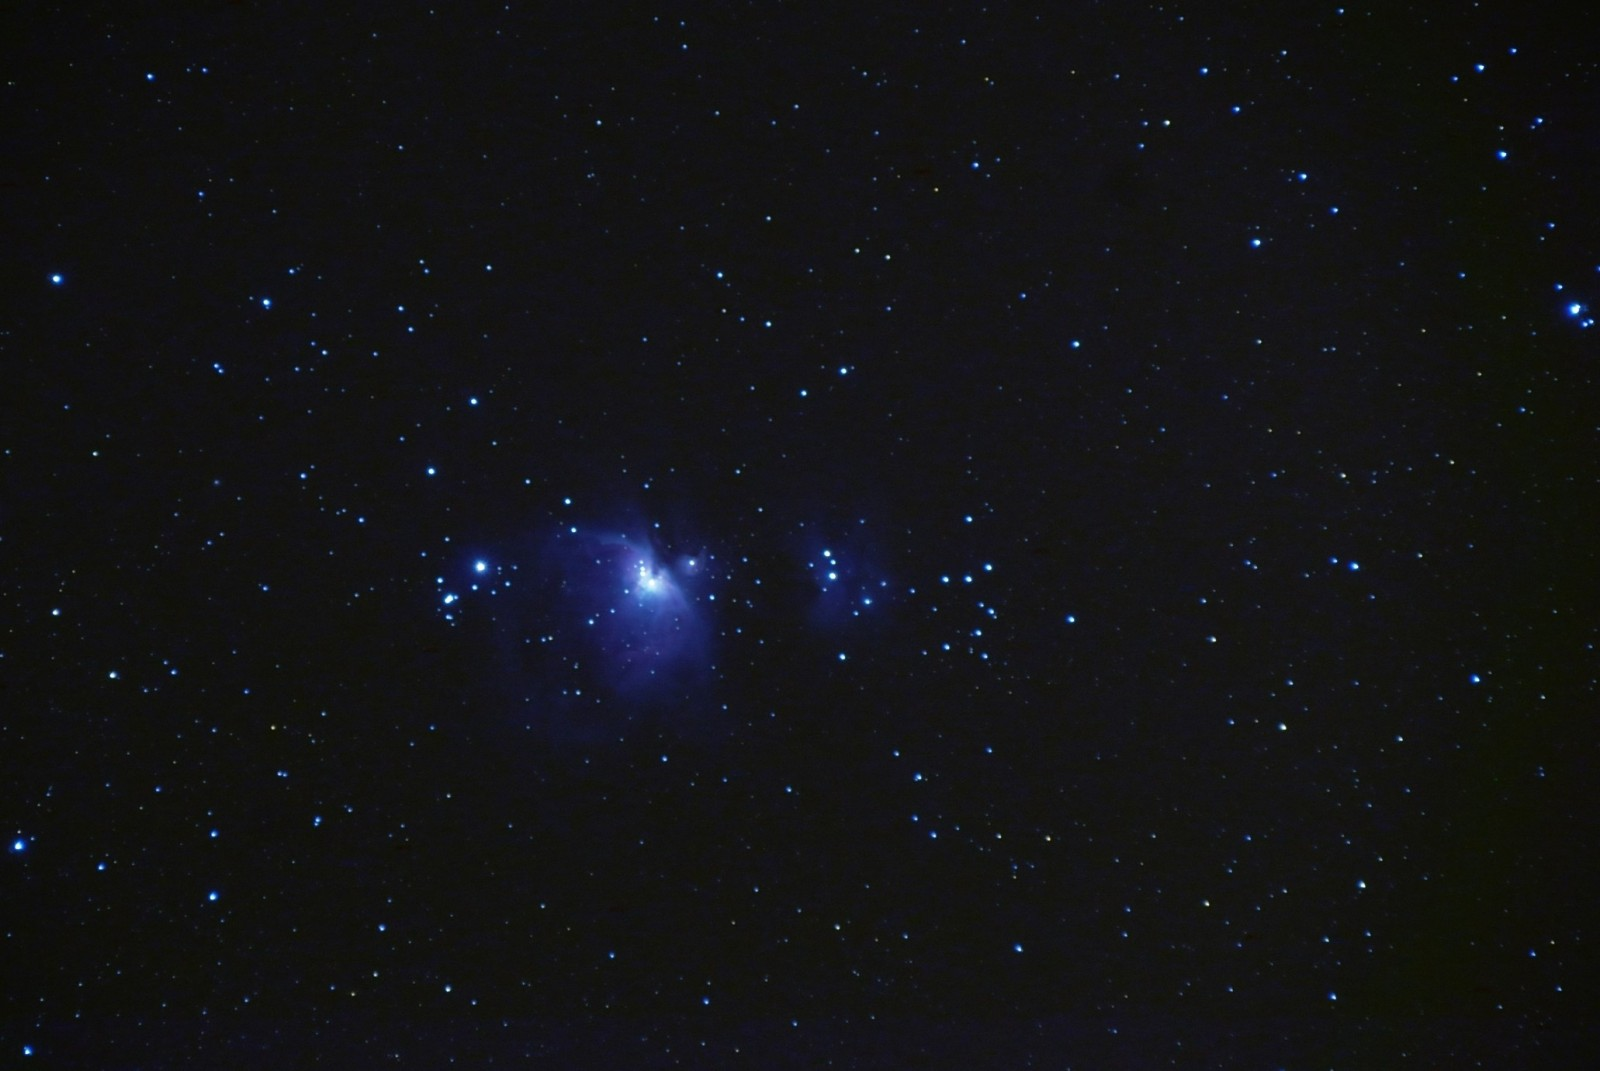 ORION ISO800 F8 210MM 30SEG DSS -  CORREGIDA - PS01 resample.jpg